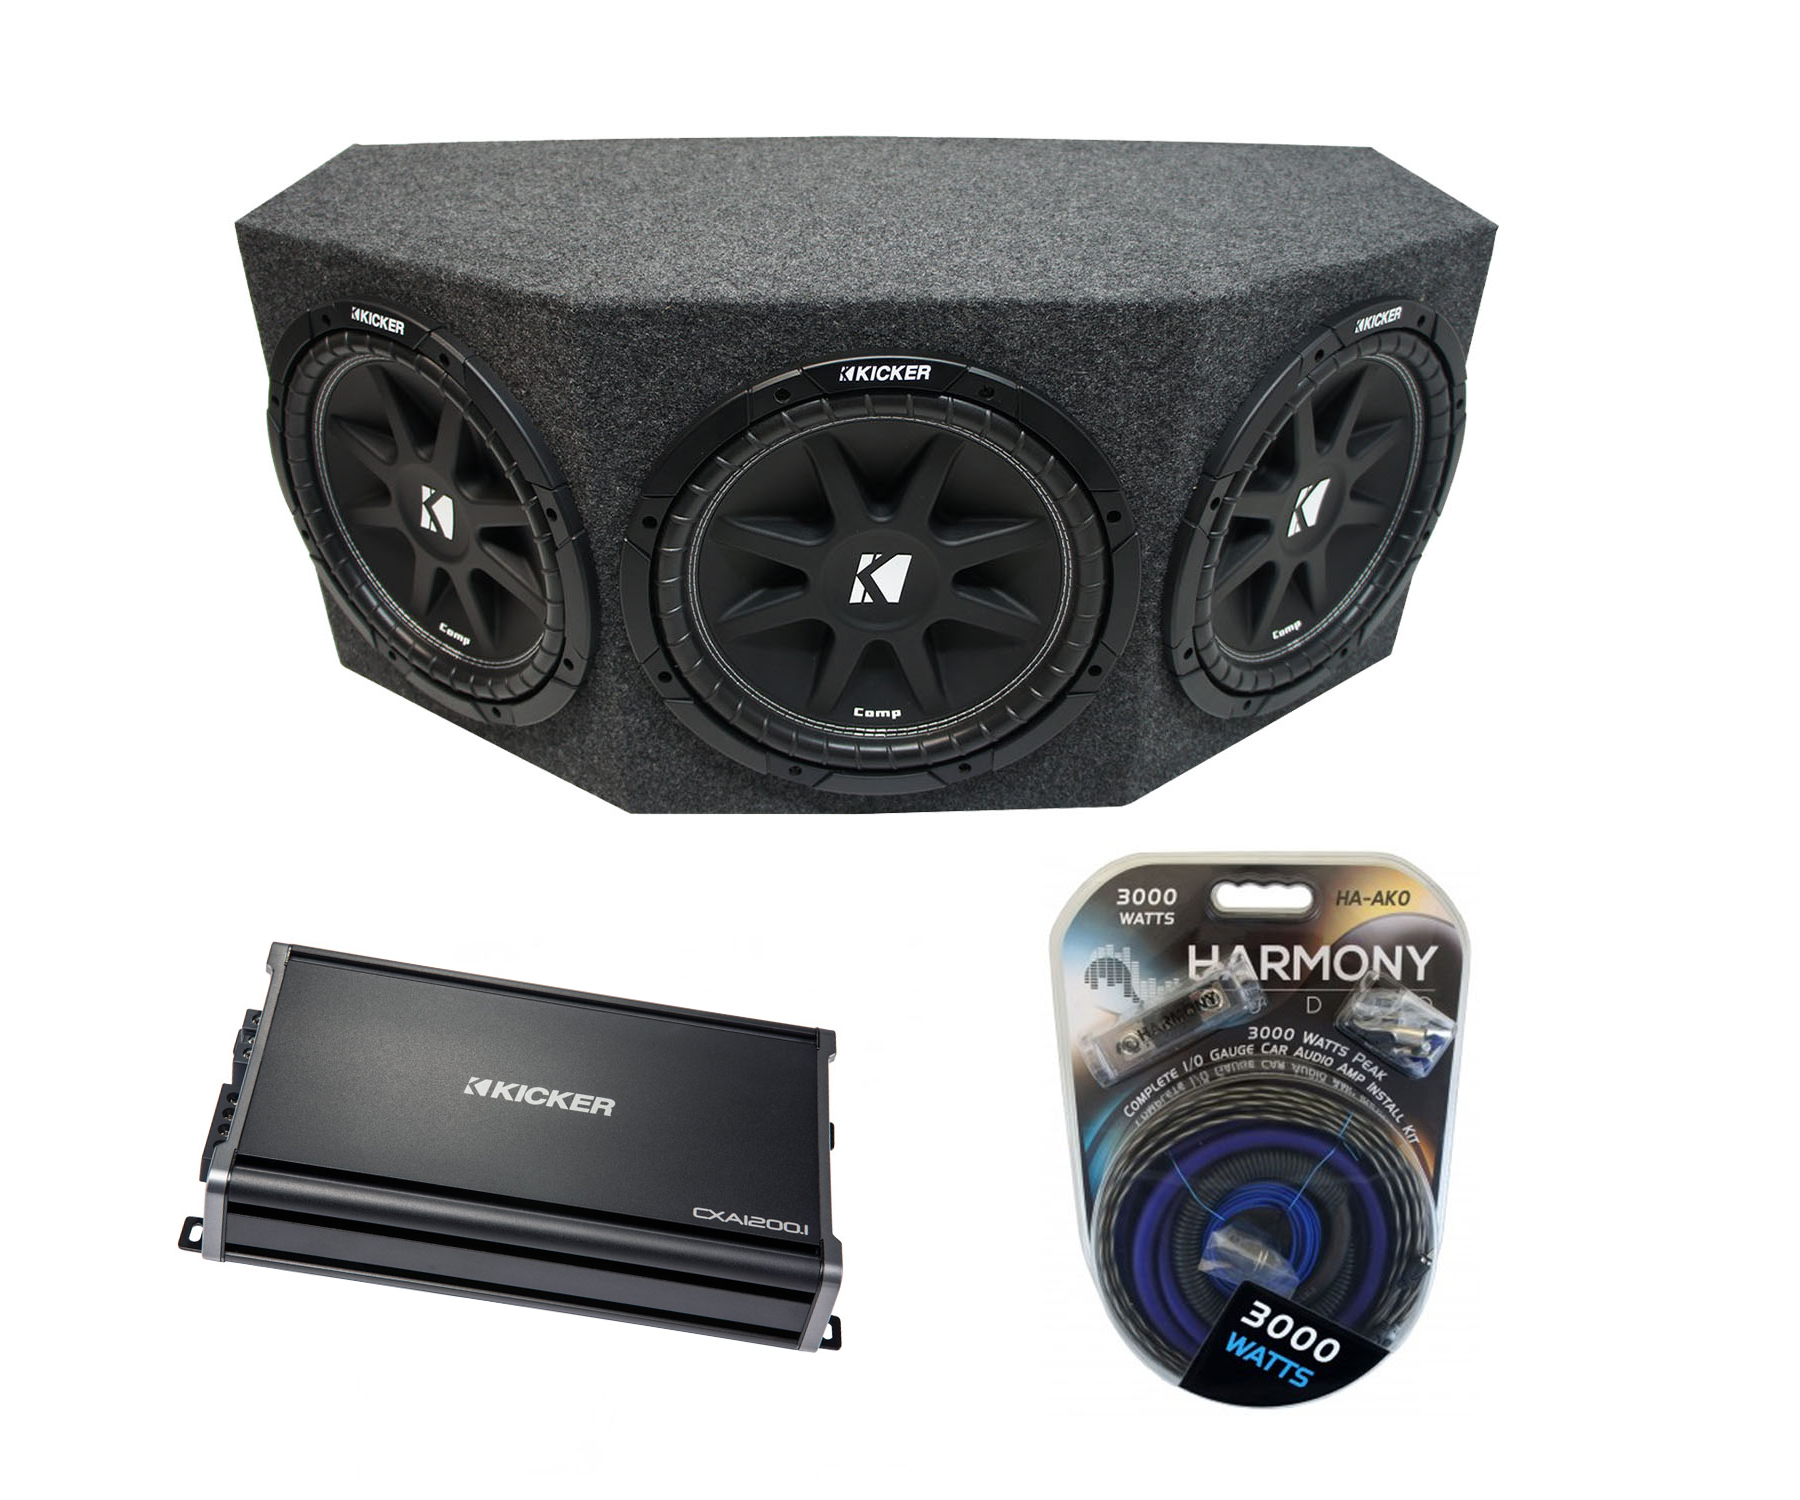 "Kicker Comp C10 Triple 10"" Subwoofer Loaded 1500 Watt Sub Box Enclosure & CX1200.1 Amp"